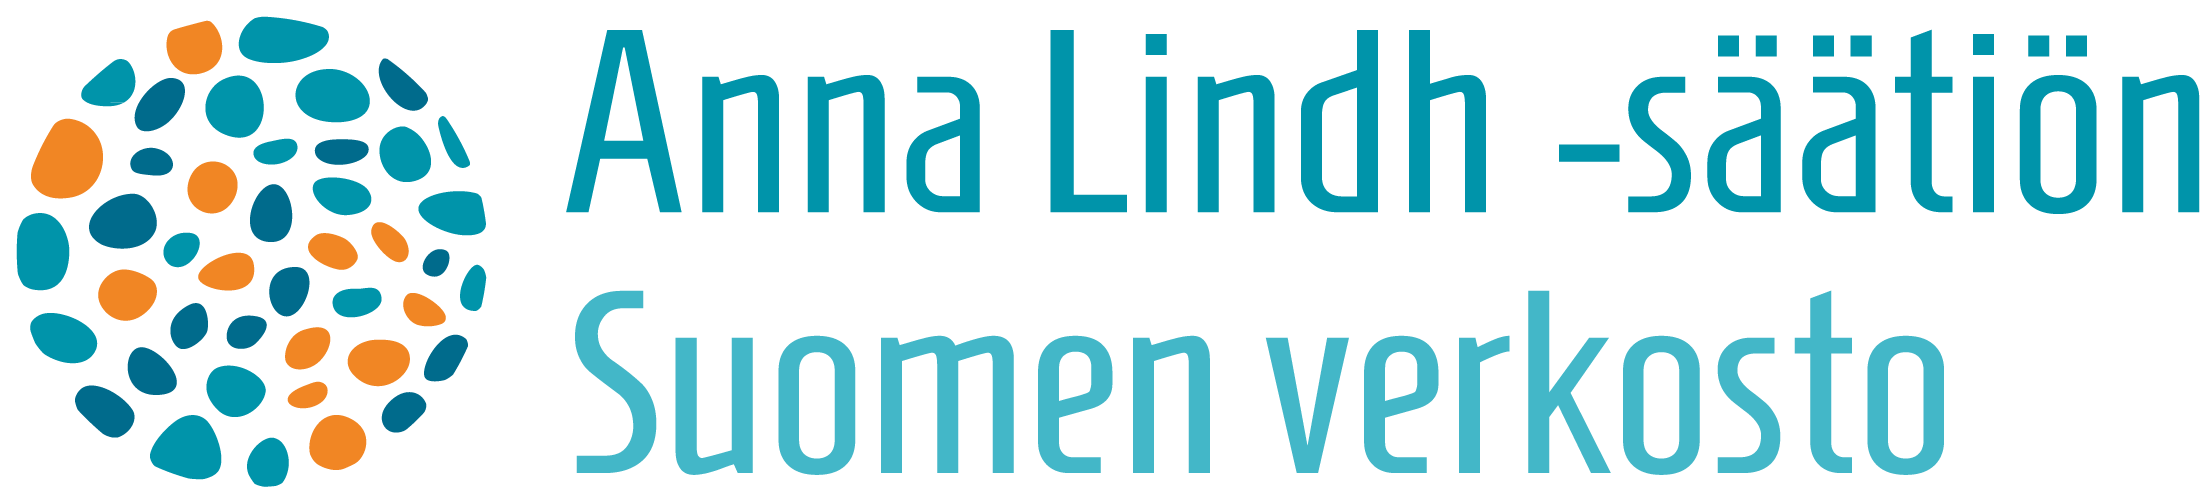 Anna Lind_Finland-RGB.png